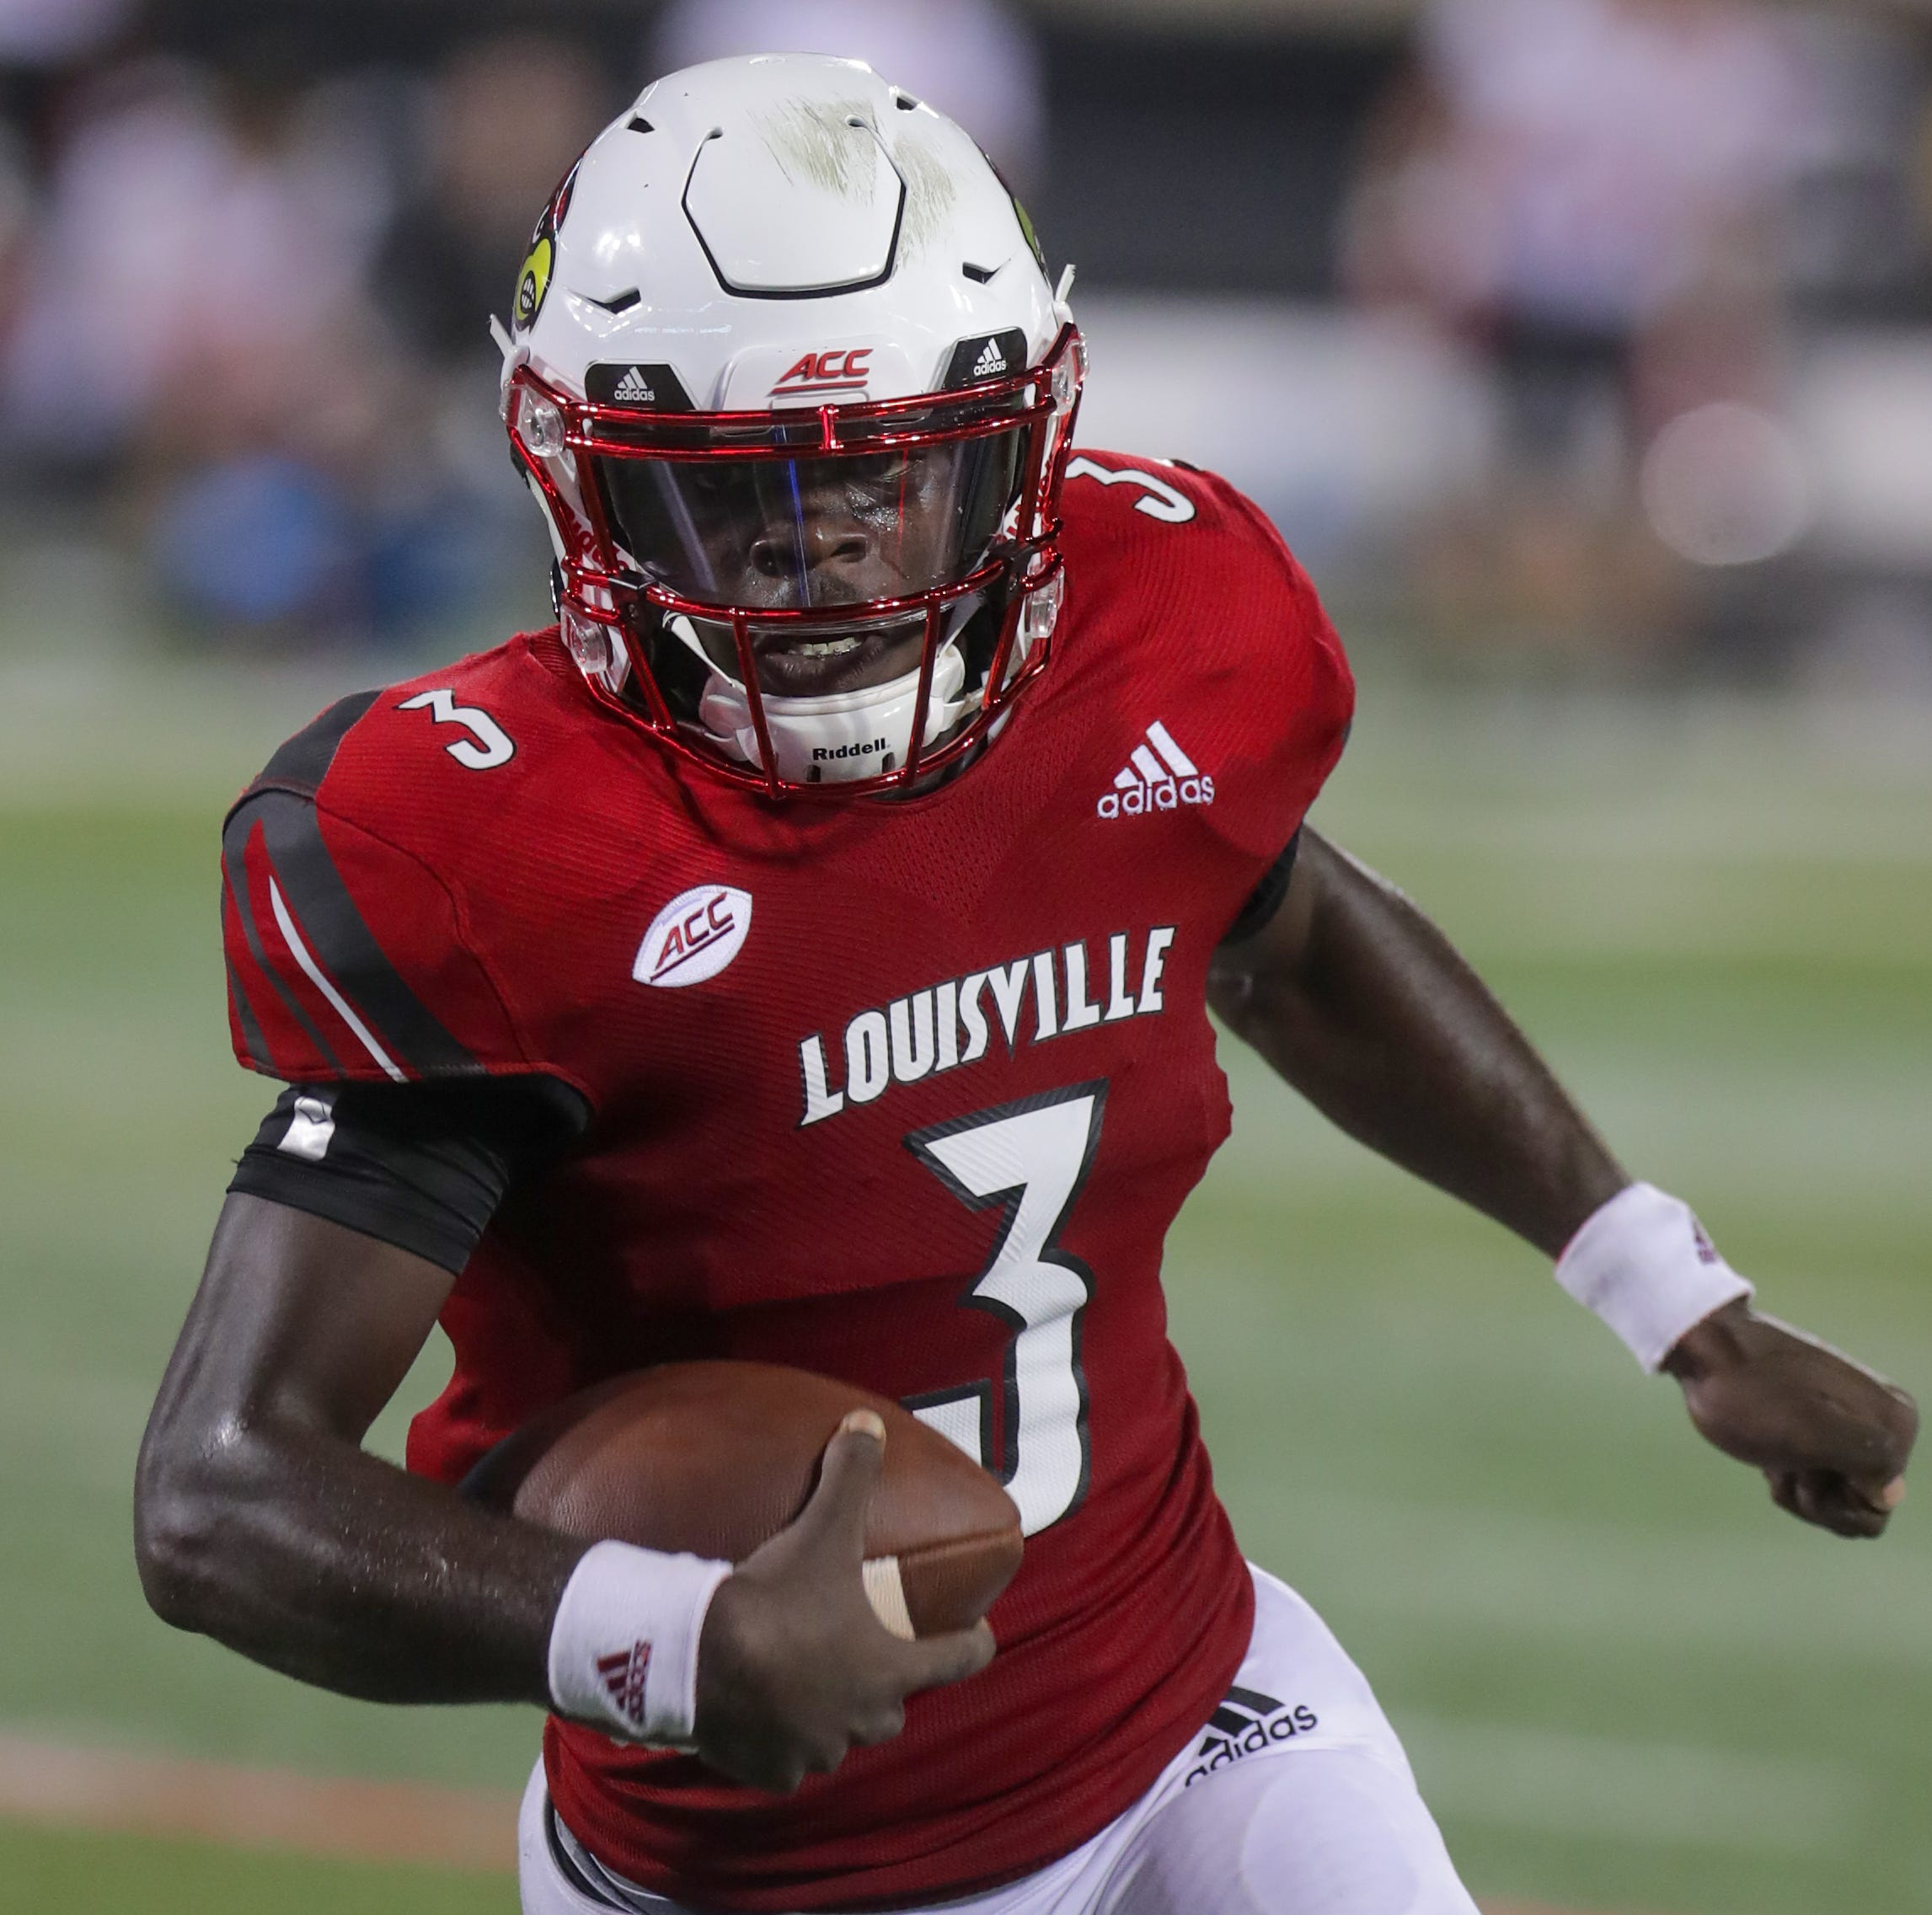 Malik Cunningham steps in to bring game-changing energy to Louisville